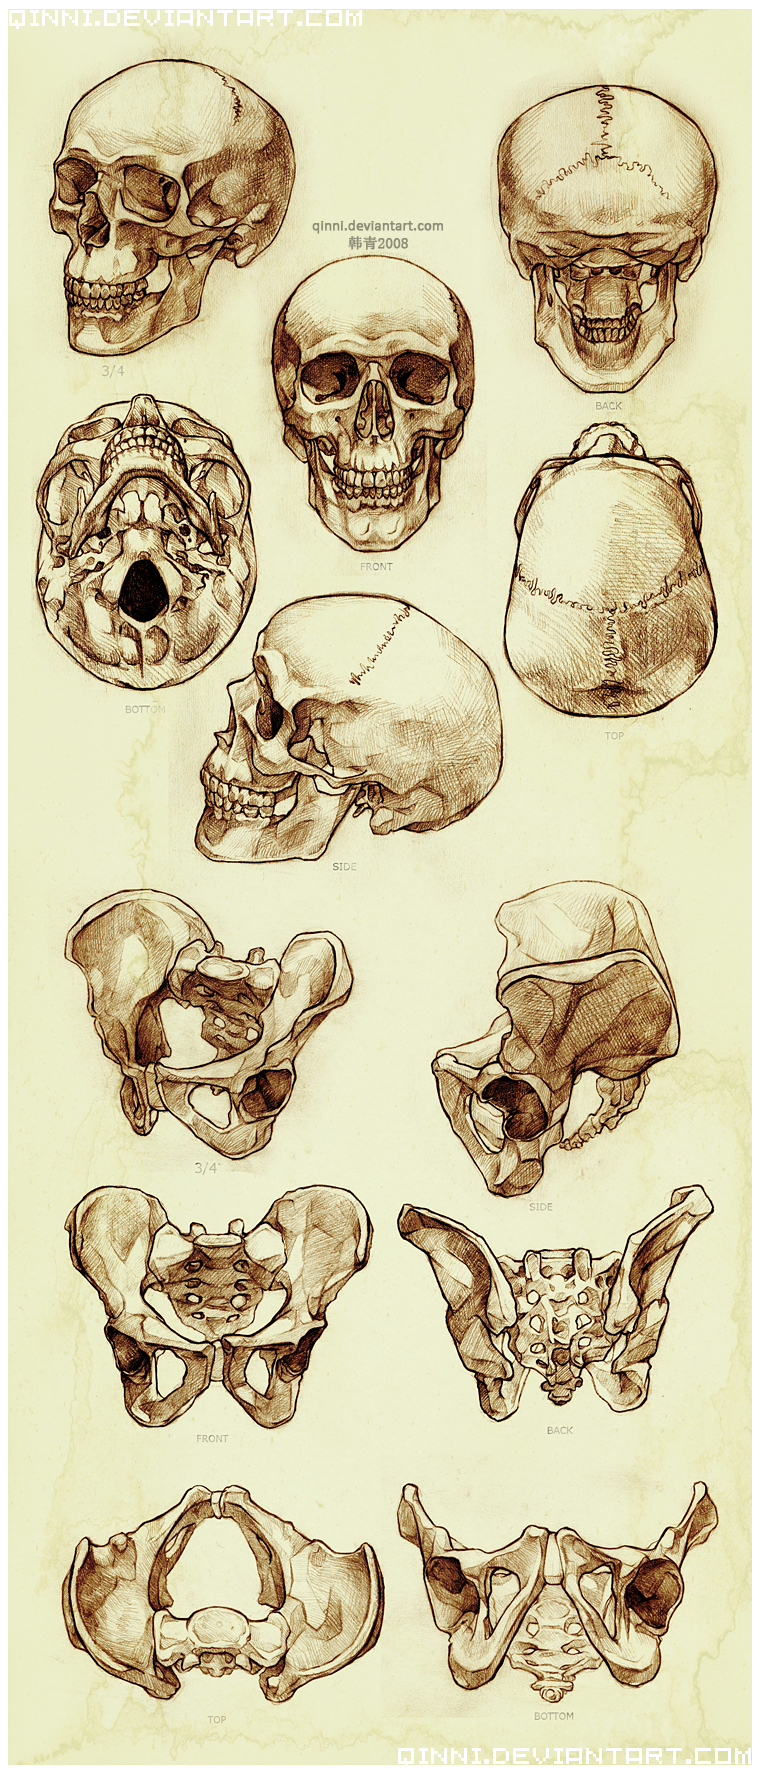 Skull and Pelvis Study by Qinni